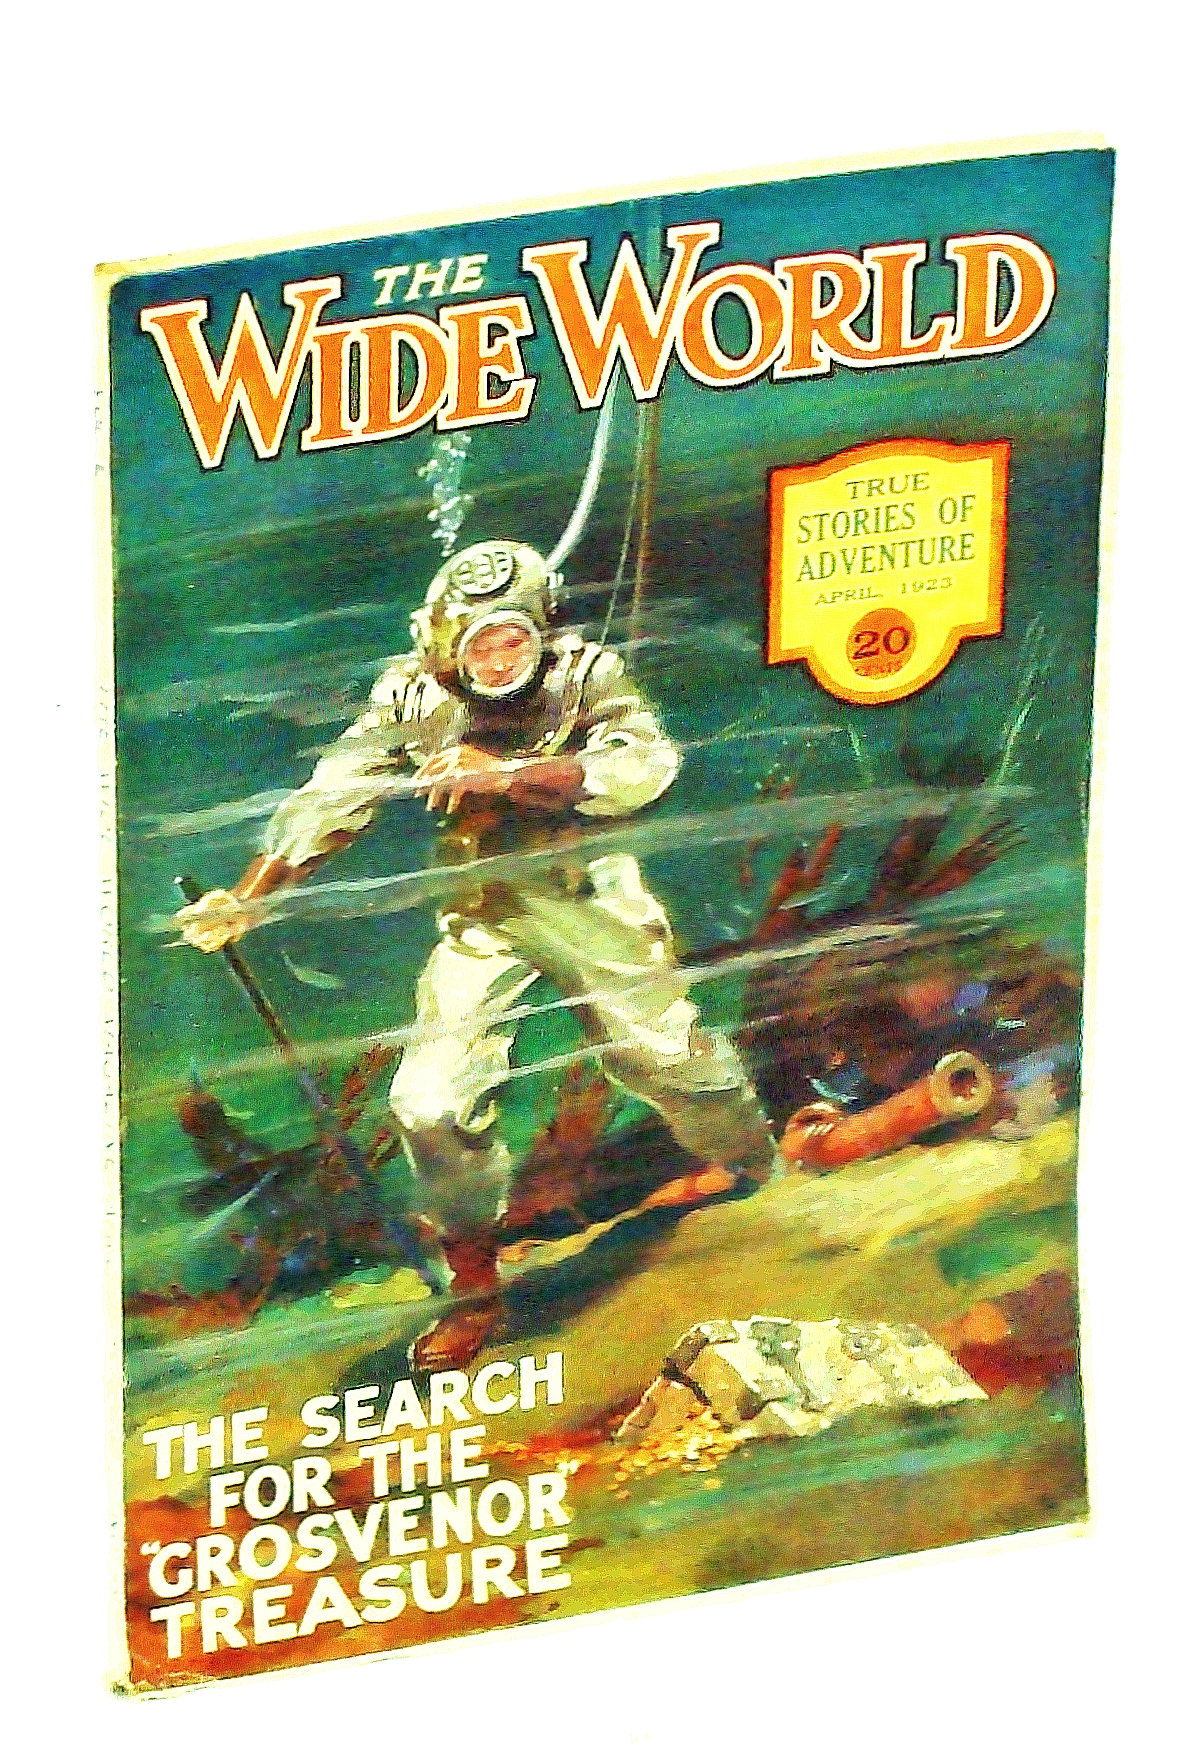 Image for The Wide World Magazine - True Stories of Adventure, April [Apr.] 1923, Vol L, No. 300: Search for the Grosvenor Treasure